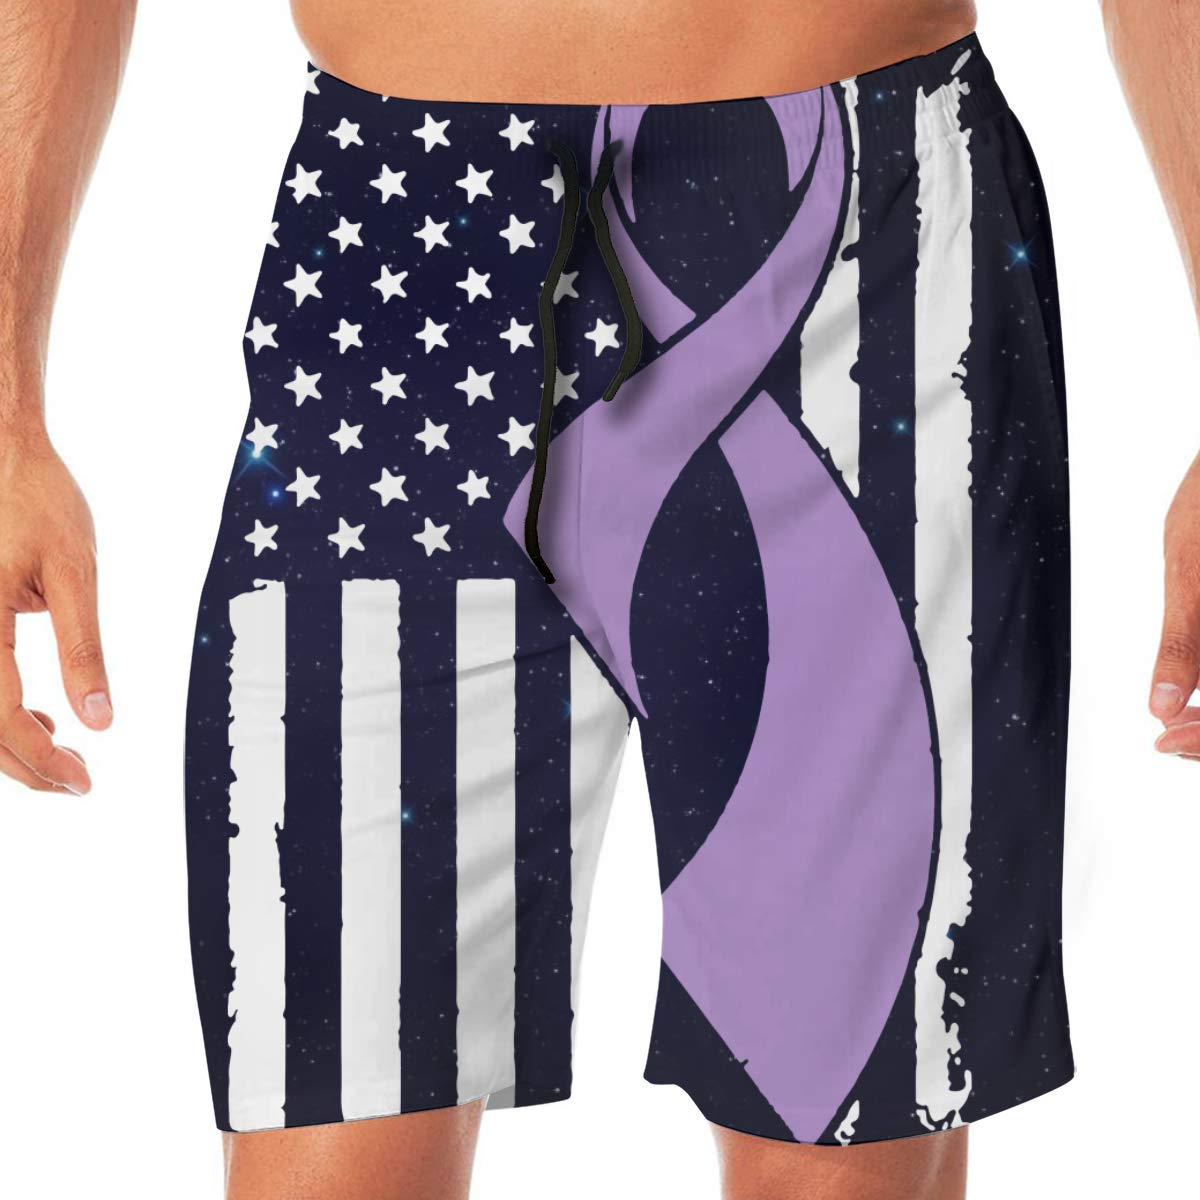 TAOHJS97 Lupus Cancer Awareness Flag-1 Mens Summer Casual Beach Board Shorts Drawstring Bathing Suit Best for Surfing